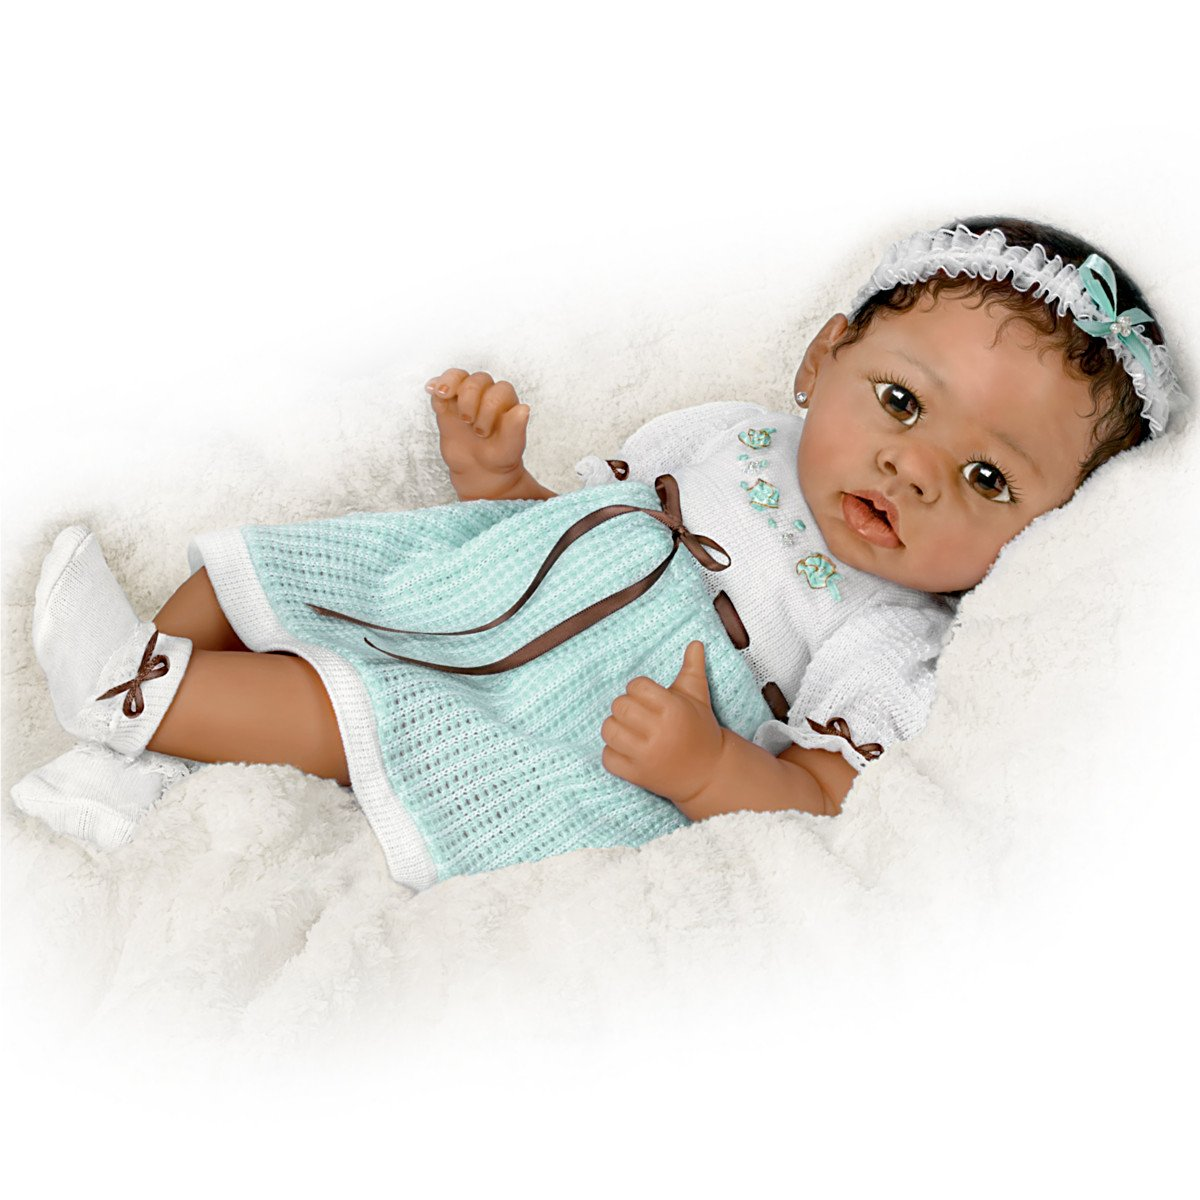 Alicia's Gentle Touch Curls Her Hand Around Your Finger So Truly Real® Lifelike, Interactive & Realistic African-American Newborn Baby Doll 22-inches by The Ashton-Drake Galleries